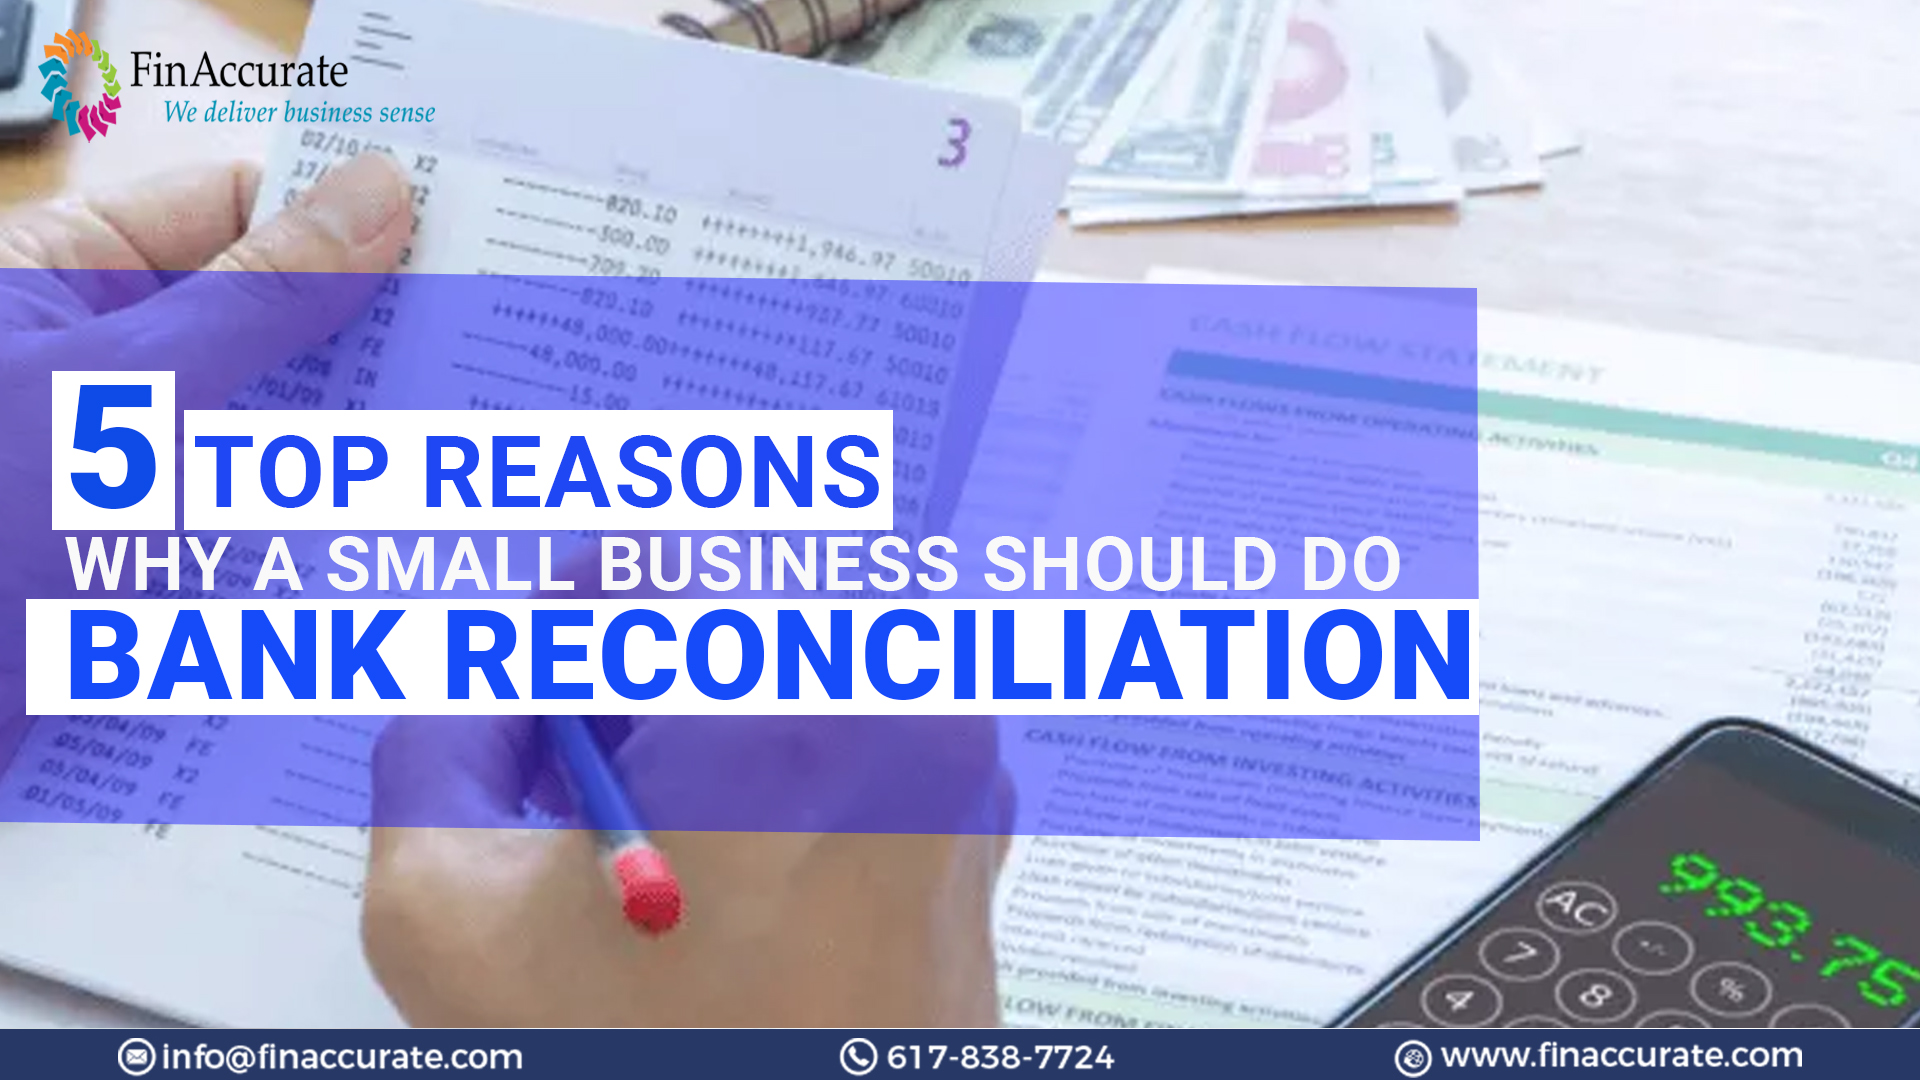 Top 5 Reasons Why a Small Business Should Do Bank Reconciliation